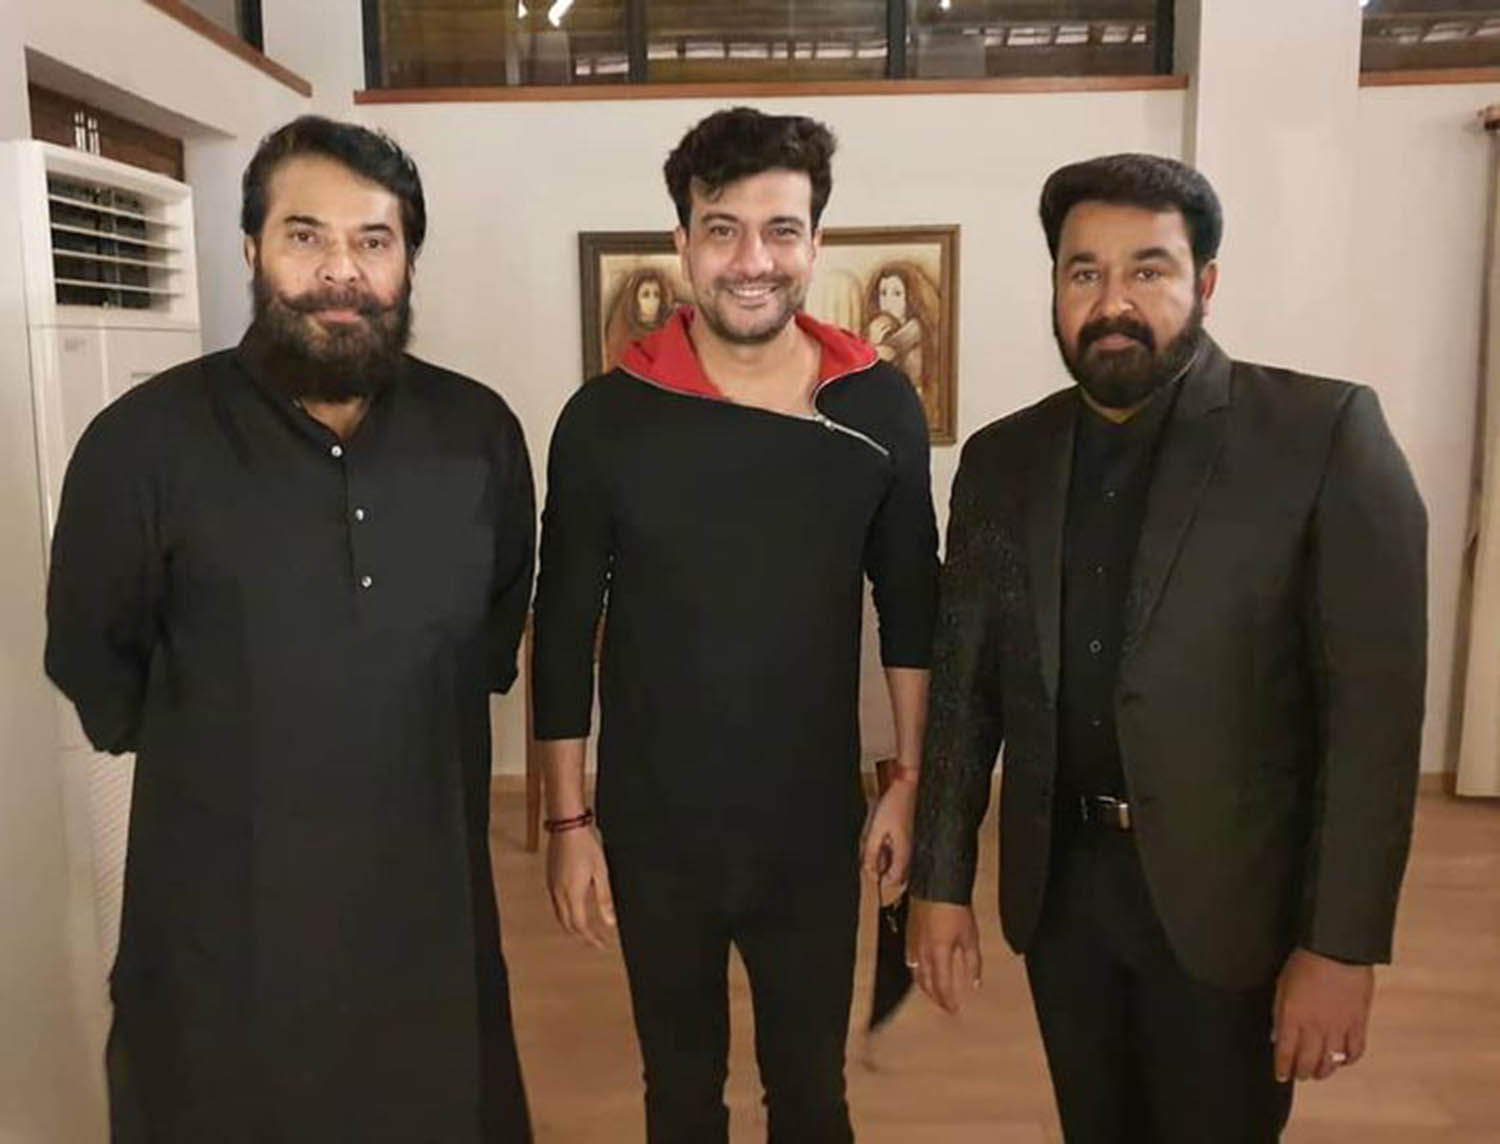 Mohanlal and Mammootty's photos from Antony Perumbavoor's daughter's reception,mohanlal mammootty latest images,mohanlal new look photos,mammootty latest look,mammootty latest images,mammootty mohanlal new photos